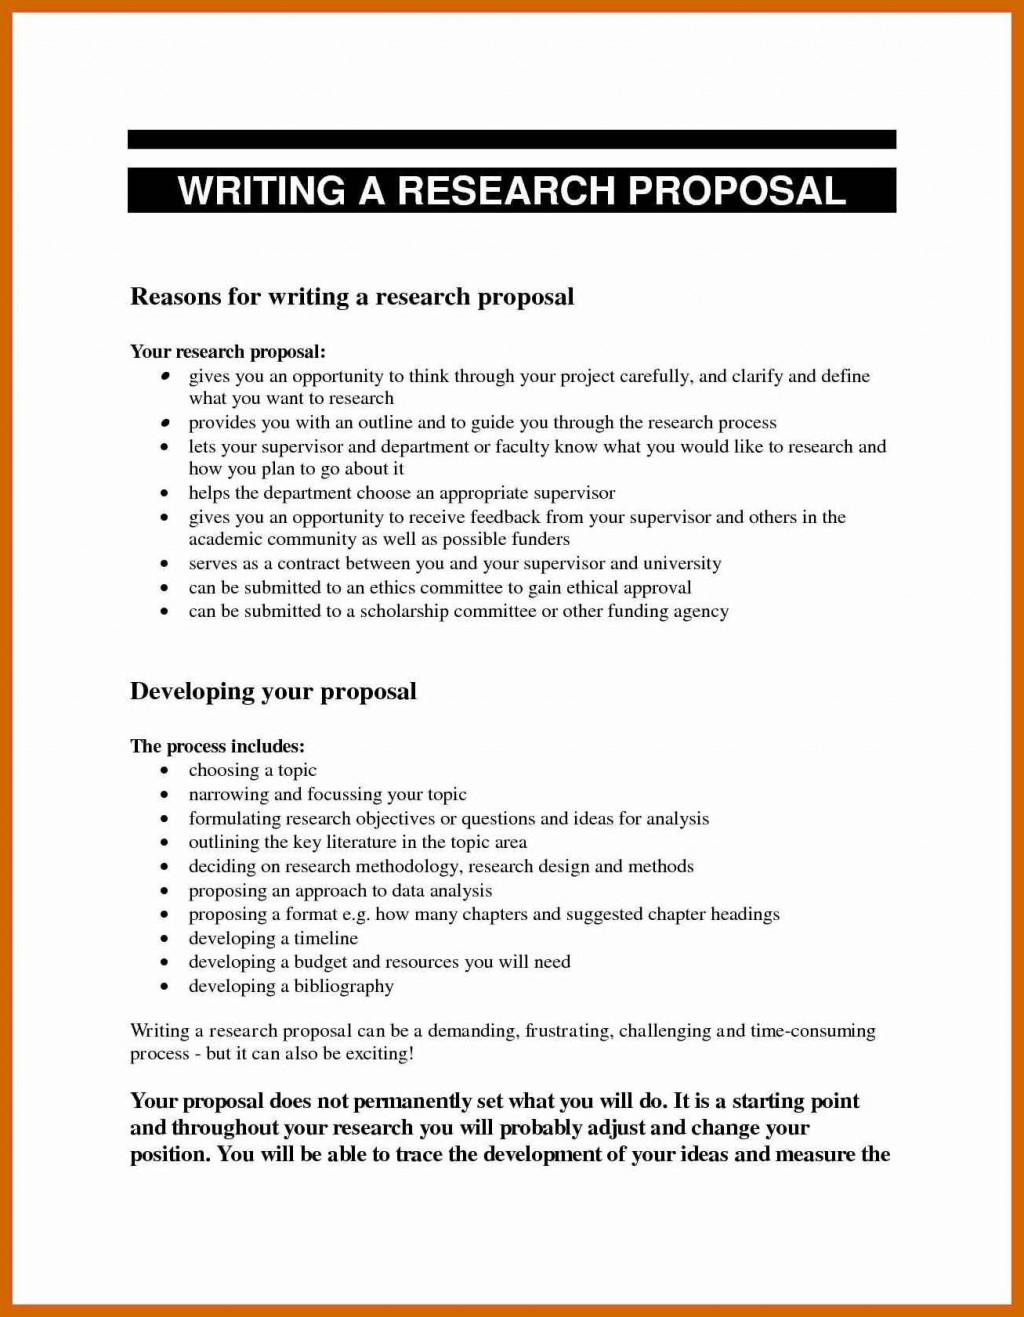 022 Research Paper Proposal Sample Writing Example Essay Topics Questions Best Wonderful Template Write 5 Of A Topic Large